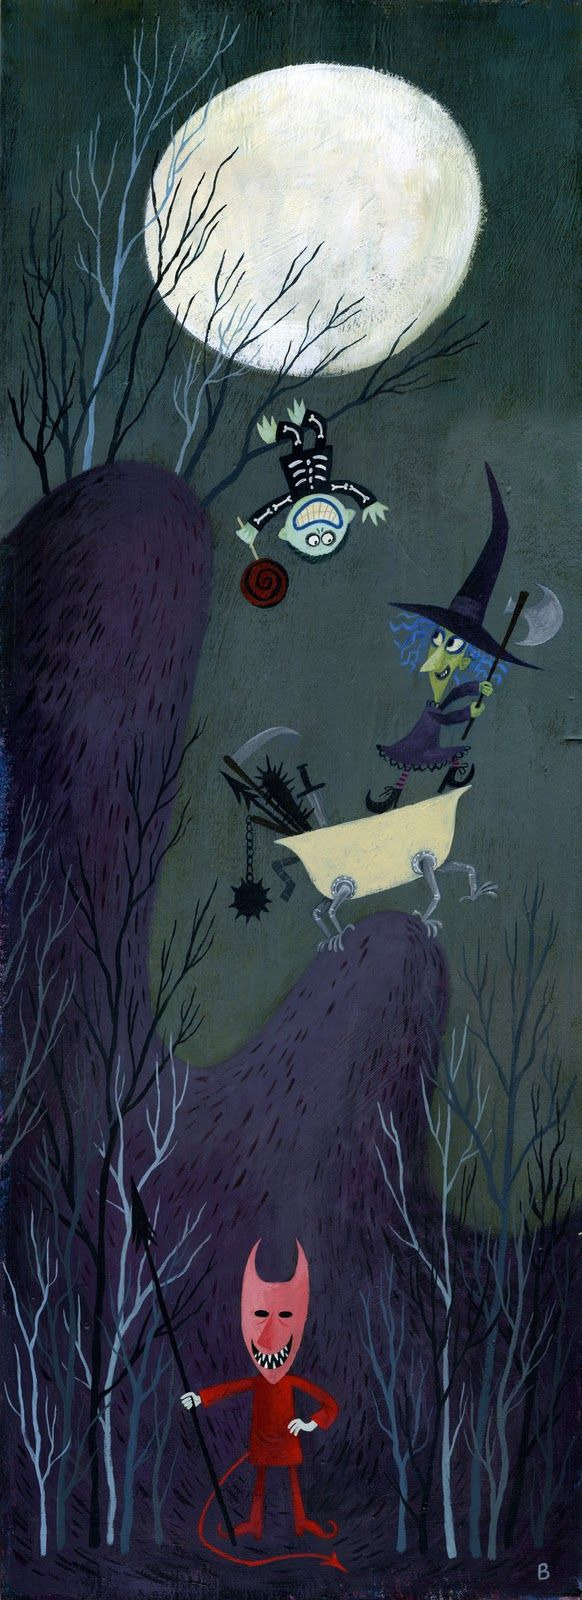 Halloween illustration by brigette b.  Cute characters!